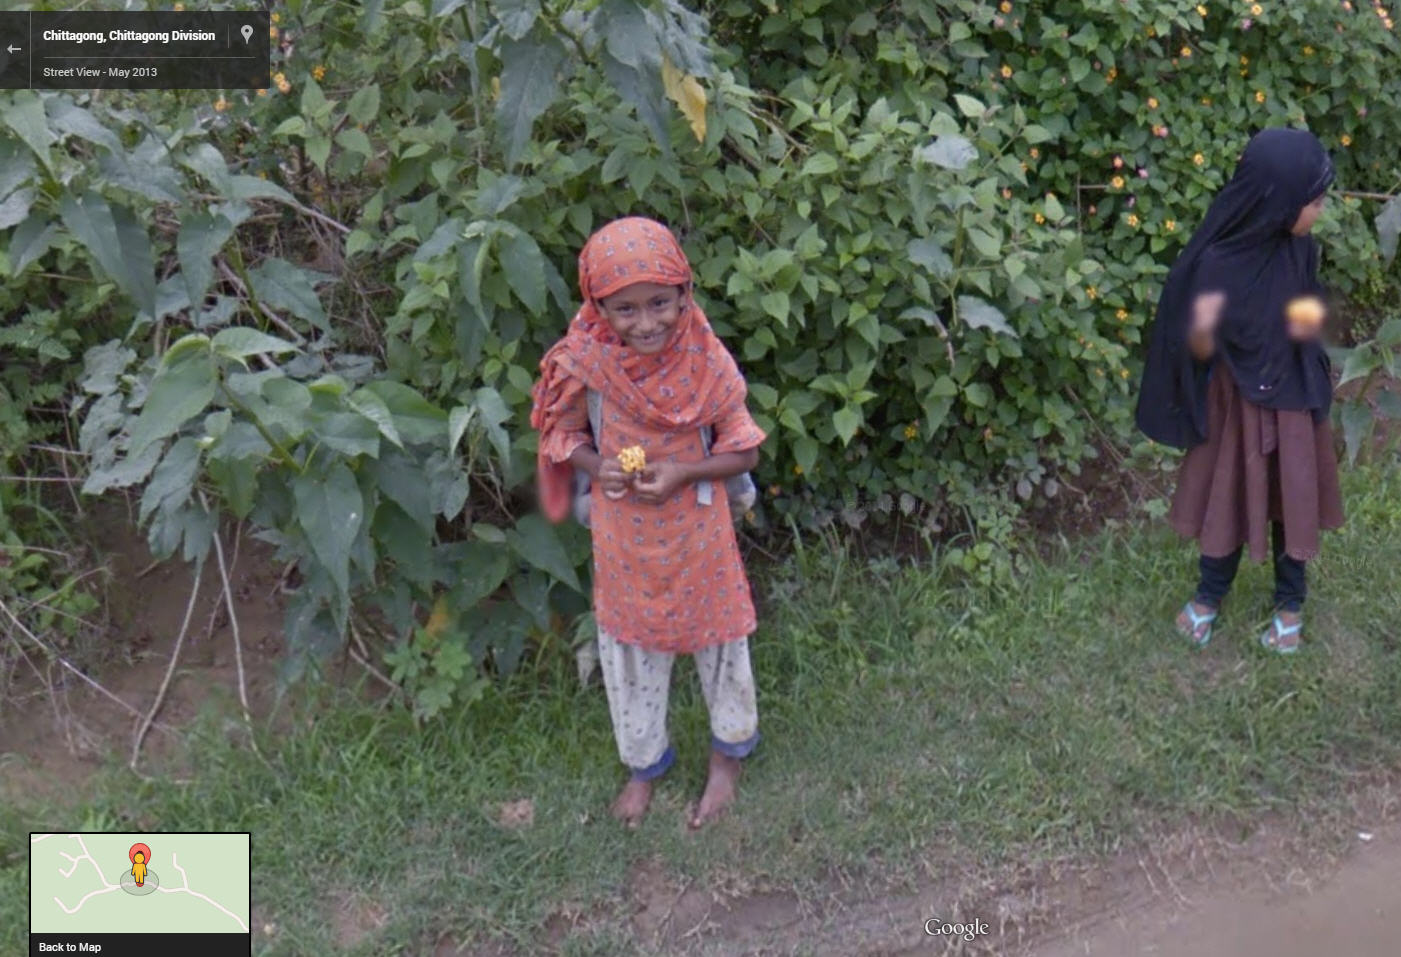 This Google Street View made my day